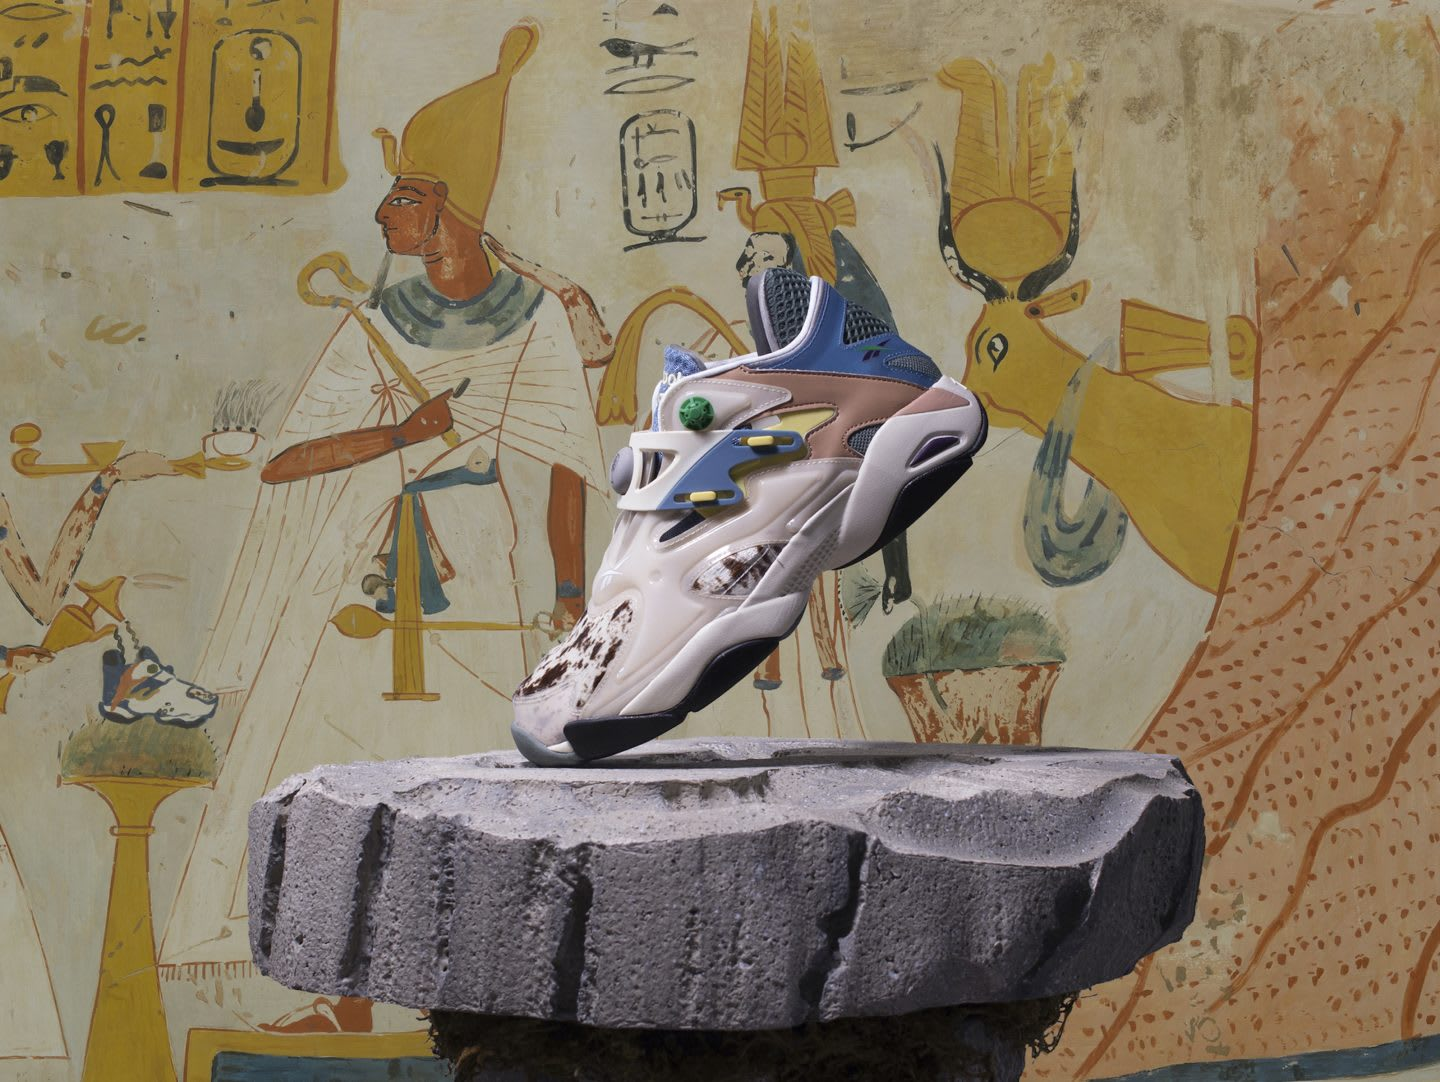 Reebok x Braindead sneakers on a stone in front of ancient mural, collaboration, teamwork, fashion, streetwear, partnership